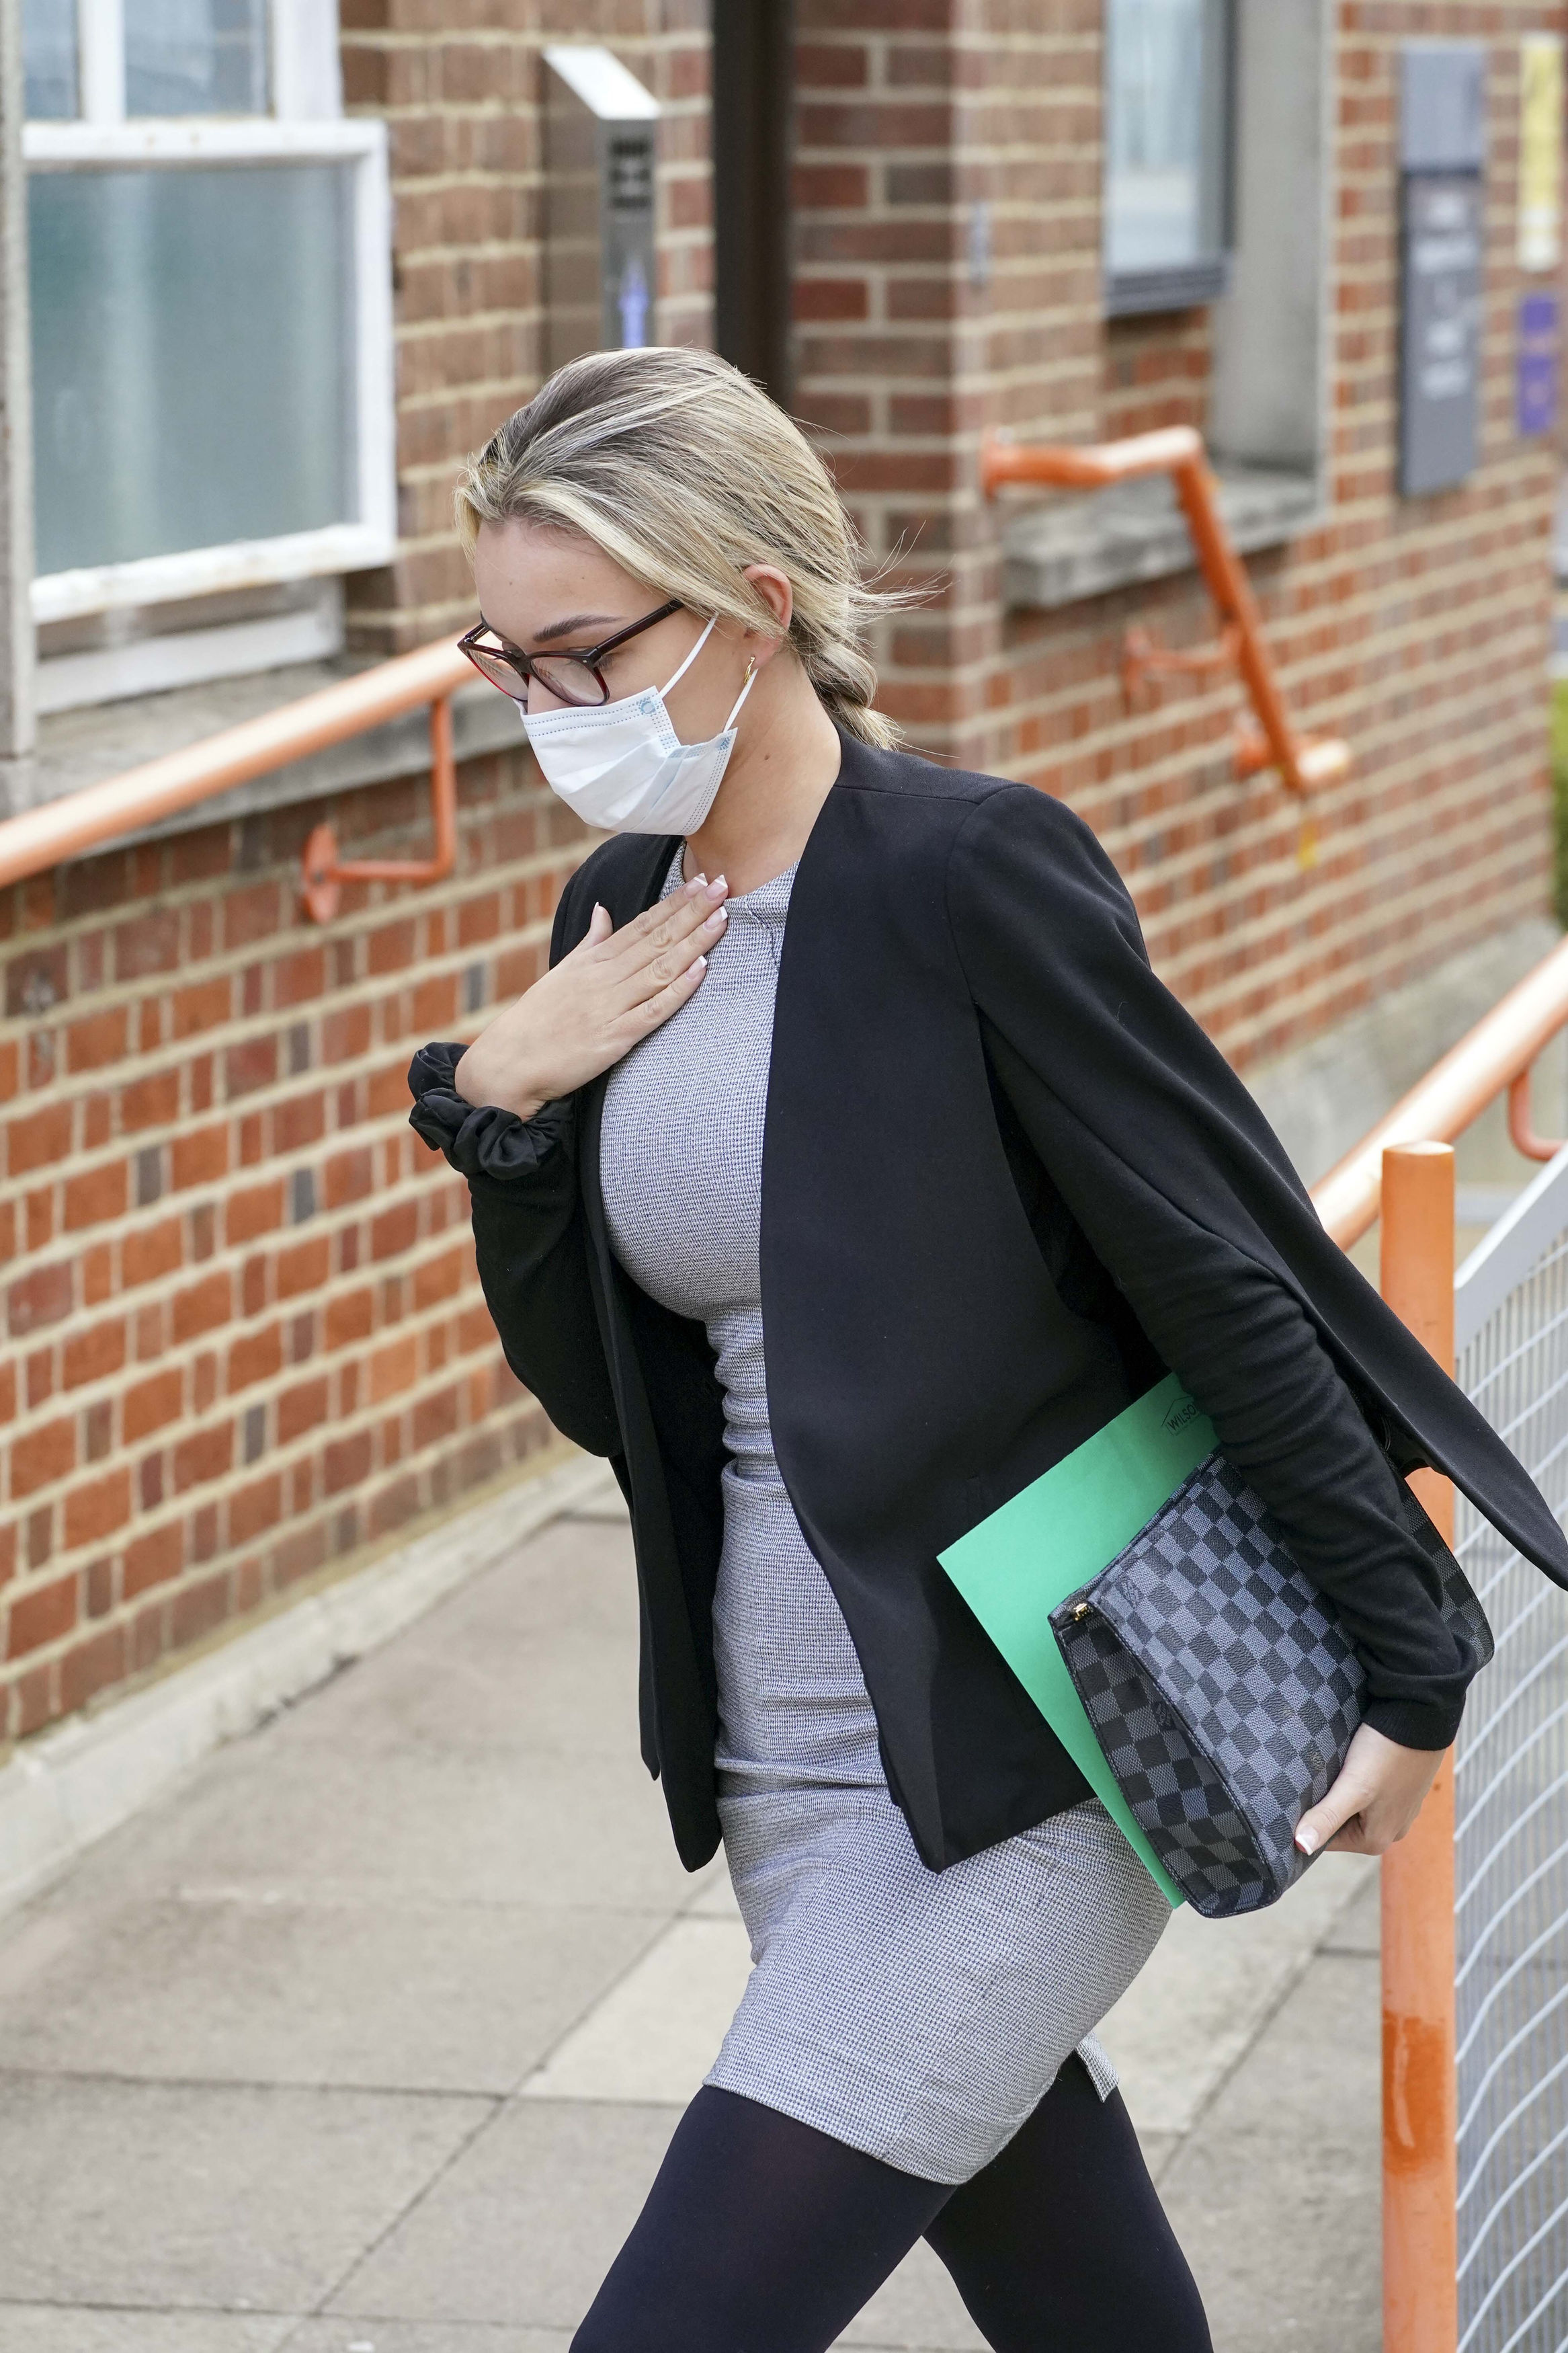 Beaux Greenslade, of Bexleyheath, leaves Uxbridge Magistrates Court, west London. Steve Parsons/PA Wire.